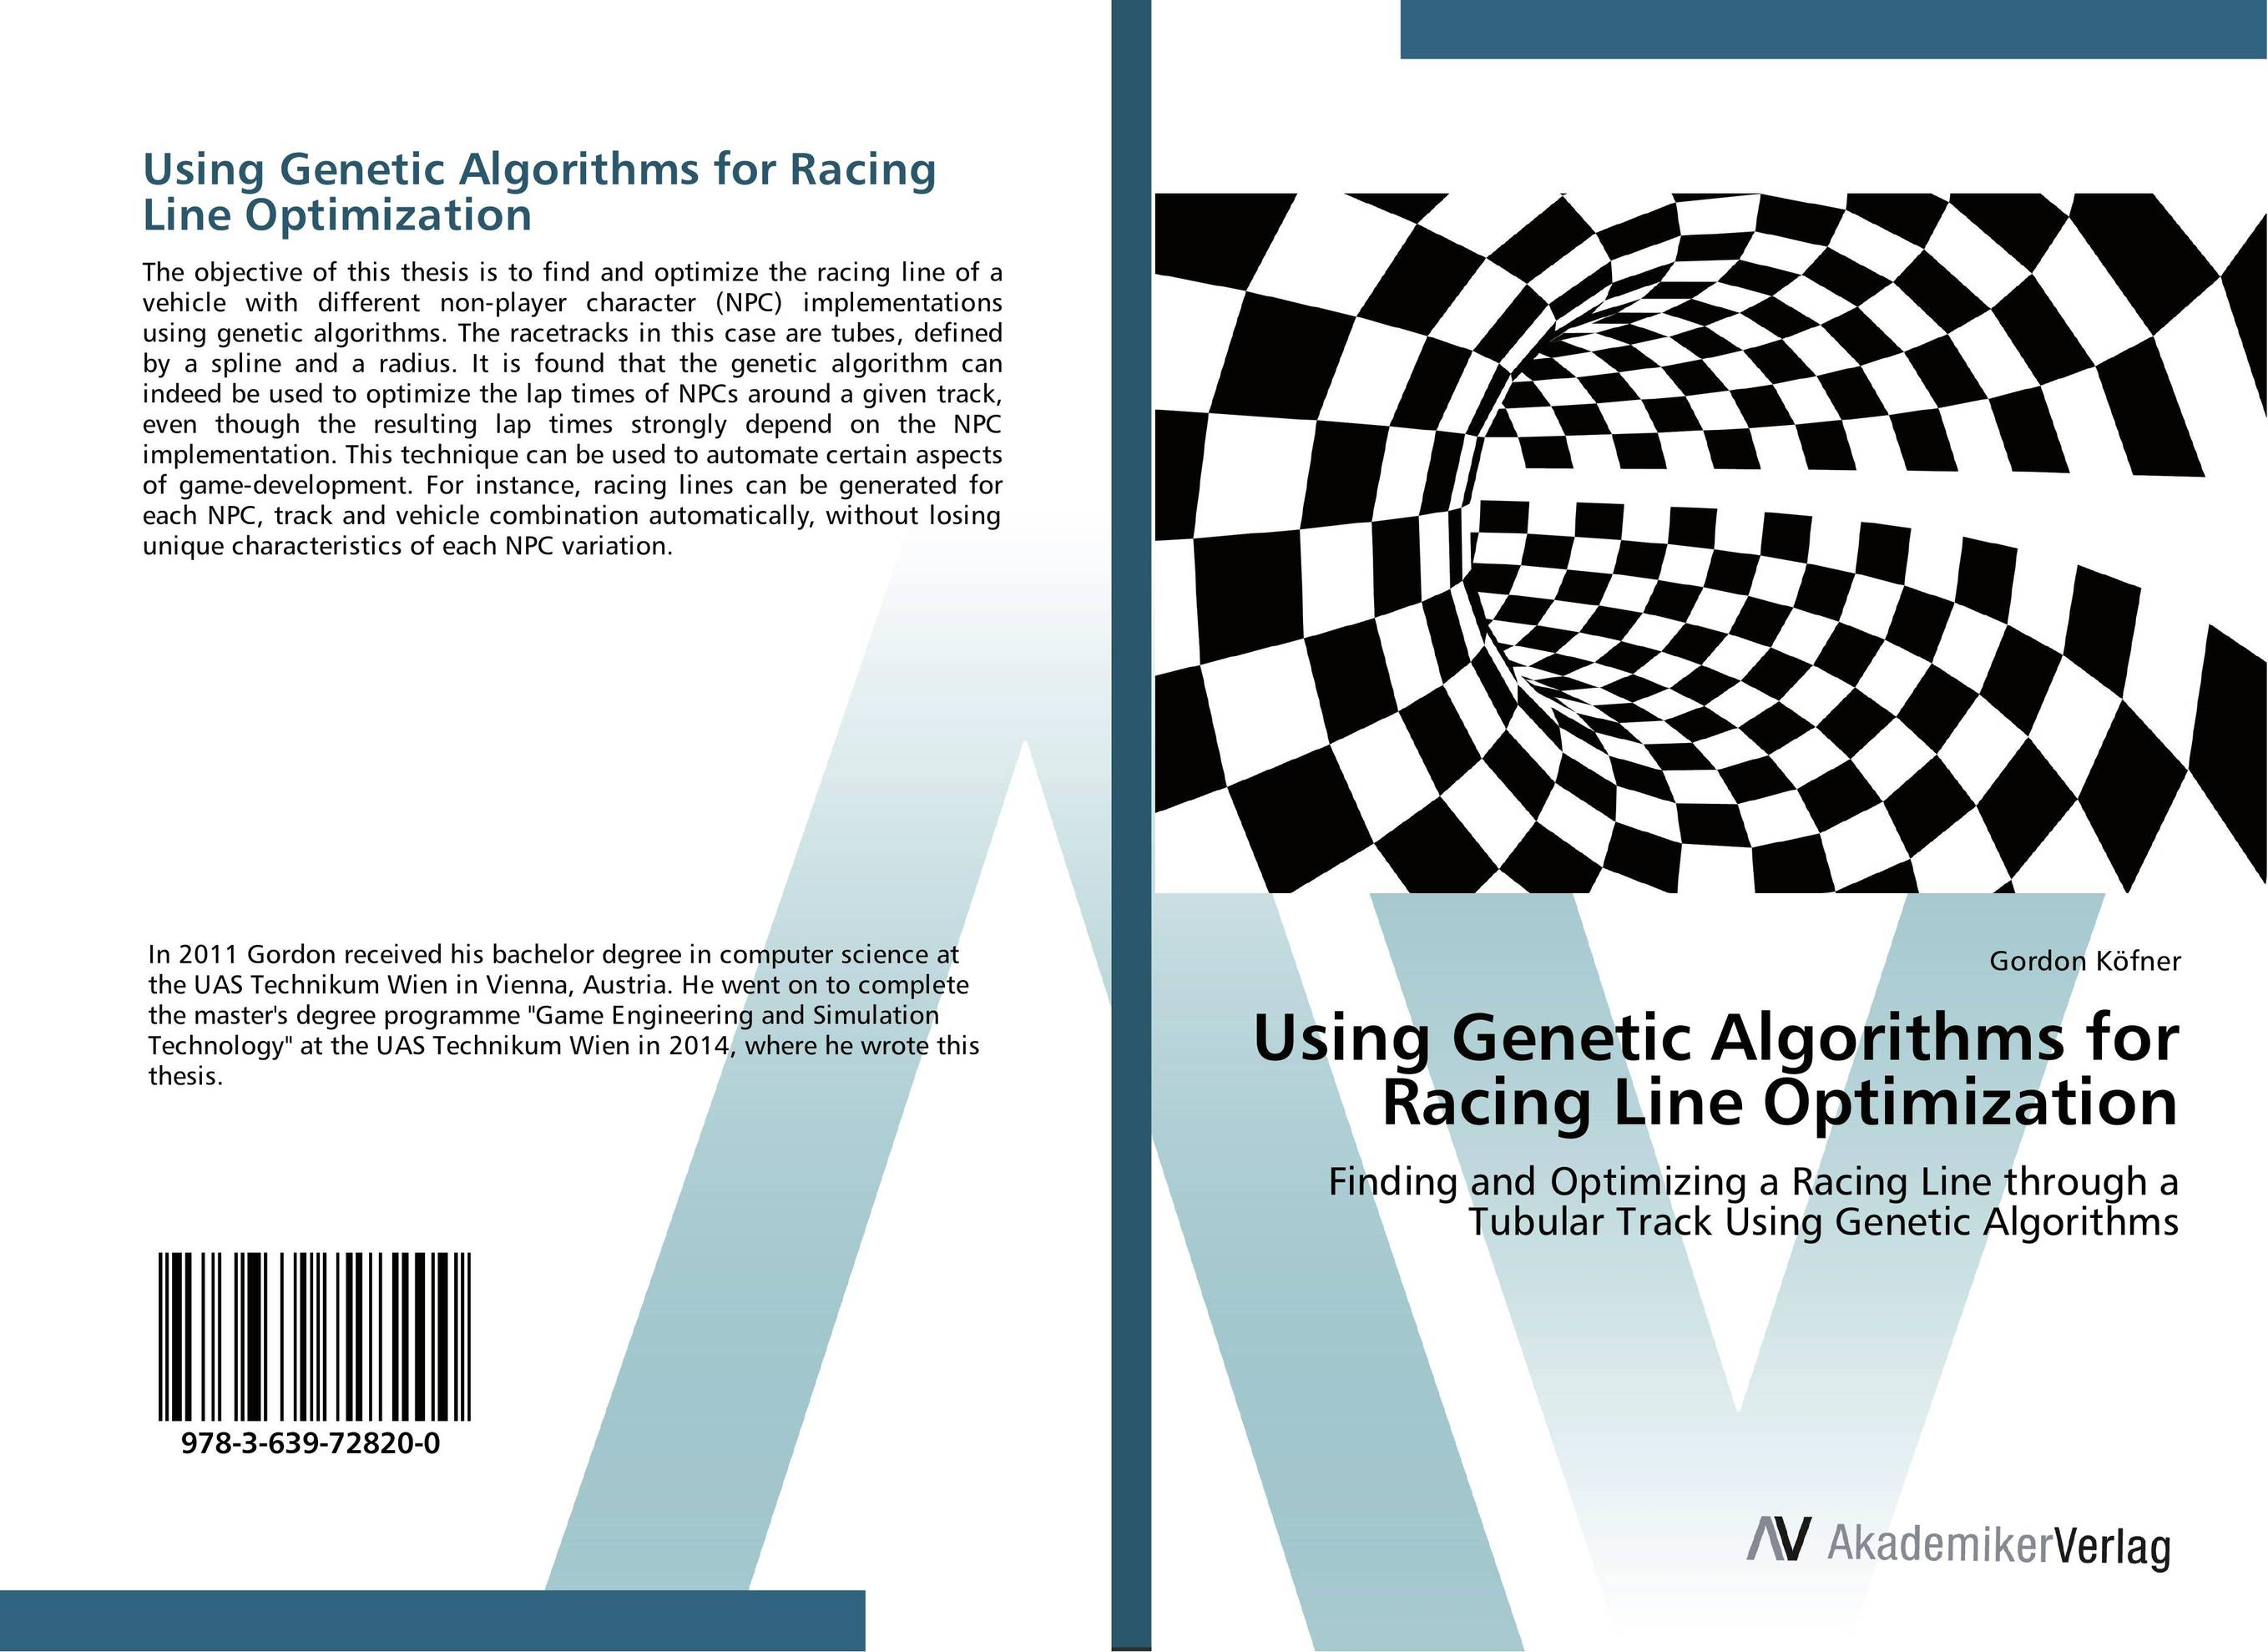 Using Genetic Algorithms for Racing Line Optimization